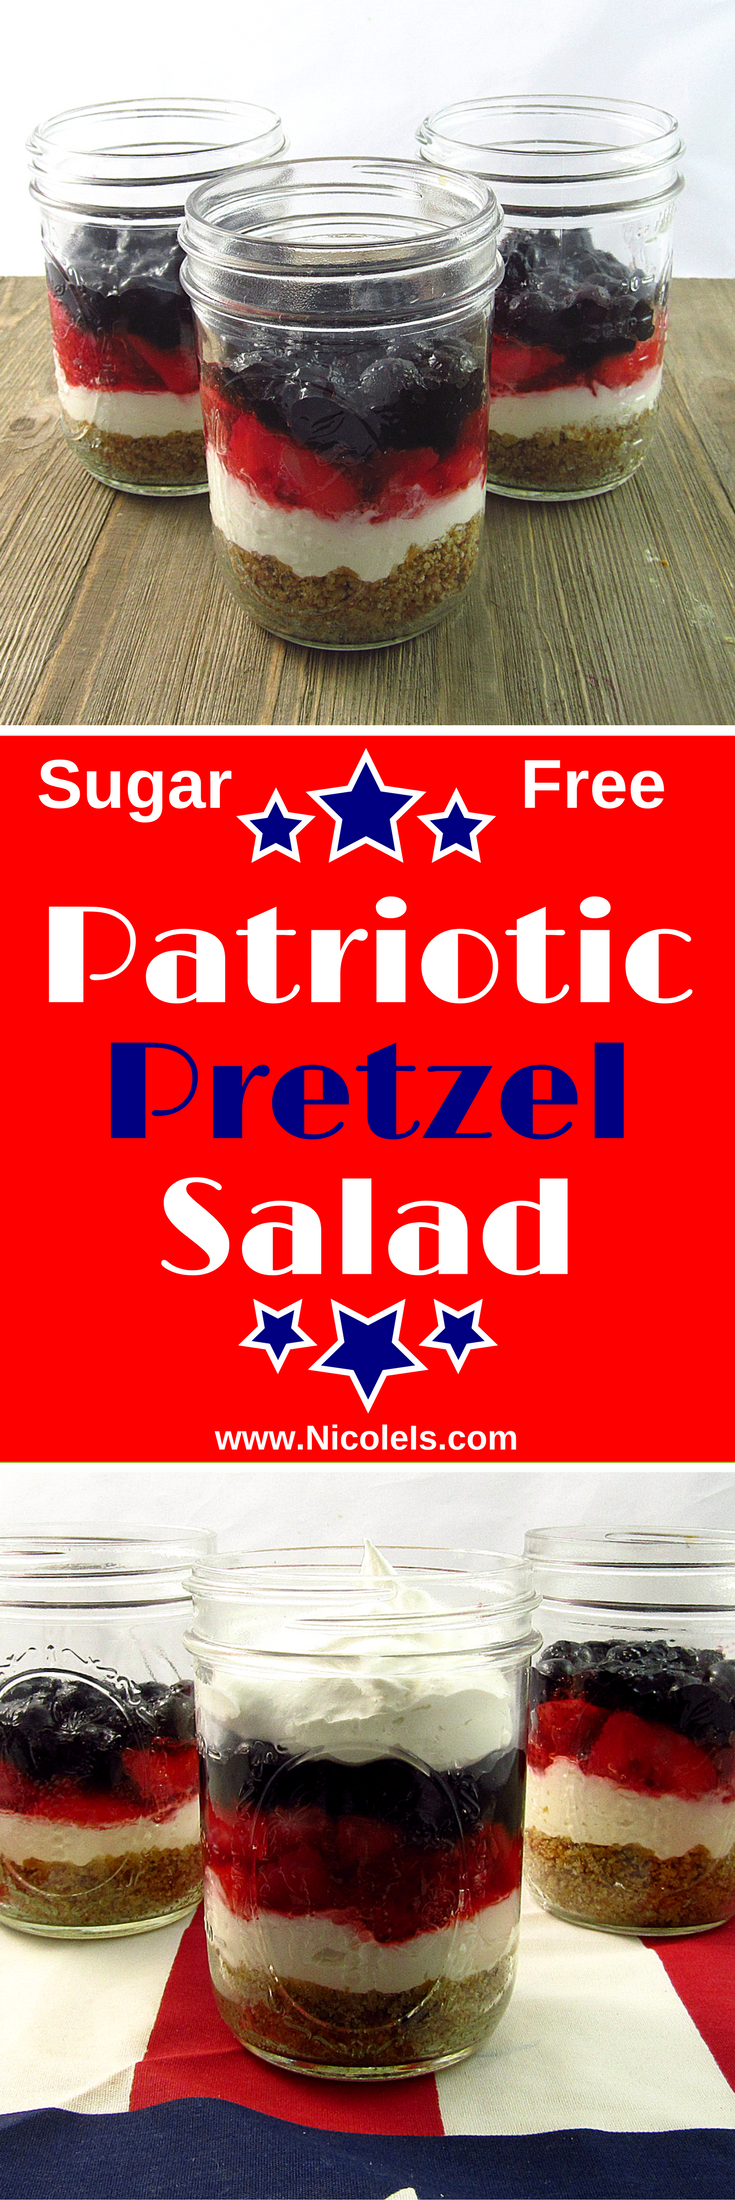 #strawberries #blueberries #patriotic #delicious #nicoleis #friendly #diabetic #memorial #pretzel #dessert #fresh #labor #salad #sugar #justSugar Free Patriotic Pretzel Salad Dessert Sugar Free Patriotic Pretzel Salad Dessert - with fresh strawberries and blueberries! Delicious dessert for Memorial Day, 4th of July, Labor Day, or just any ol' BBQ! Diabetic Friendly : nicoleisSugar Free Patriotic Pretzel Salad Dessert - with fresh strawberries and blueberries! Delicious dessert for Memoria... #labordayfoodideas